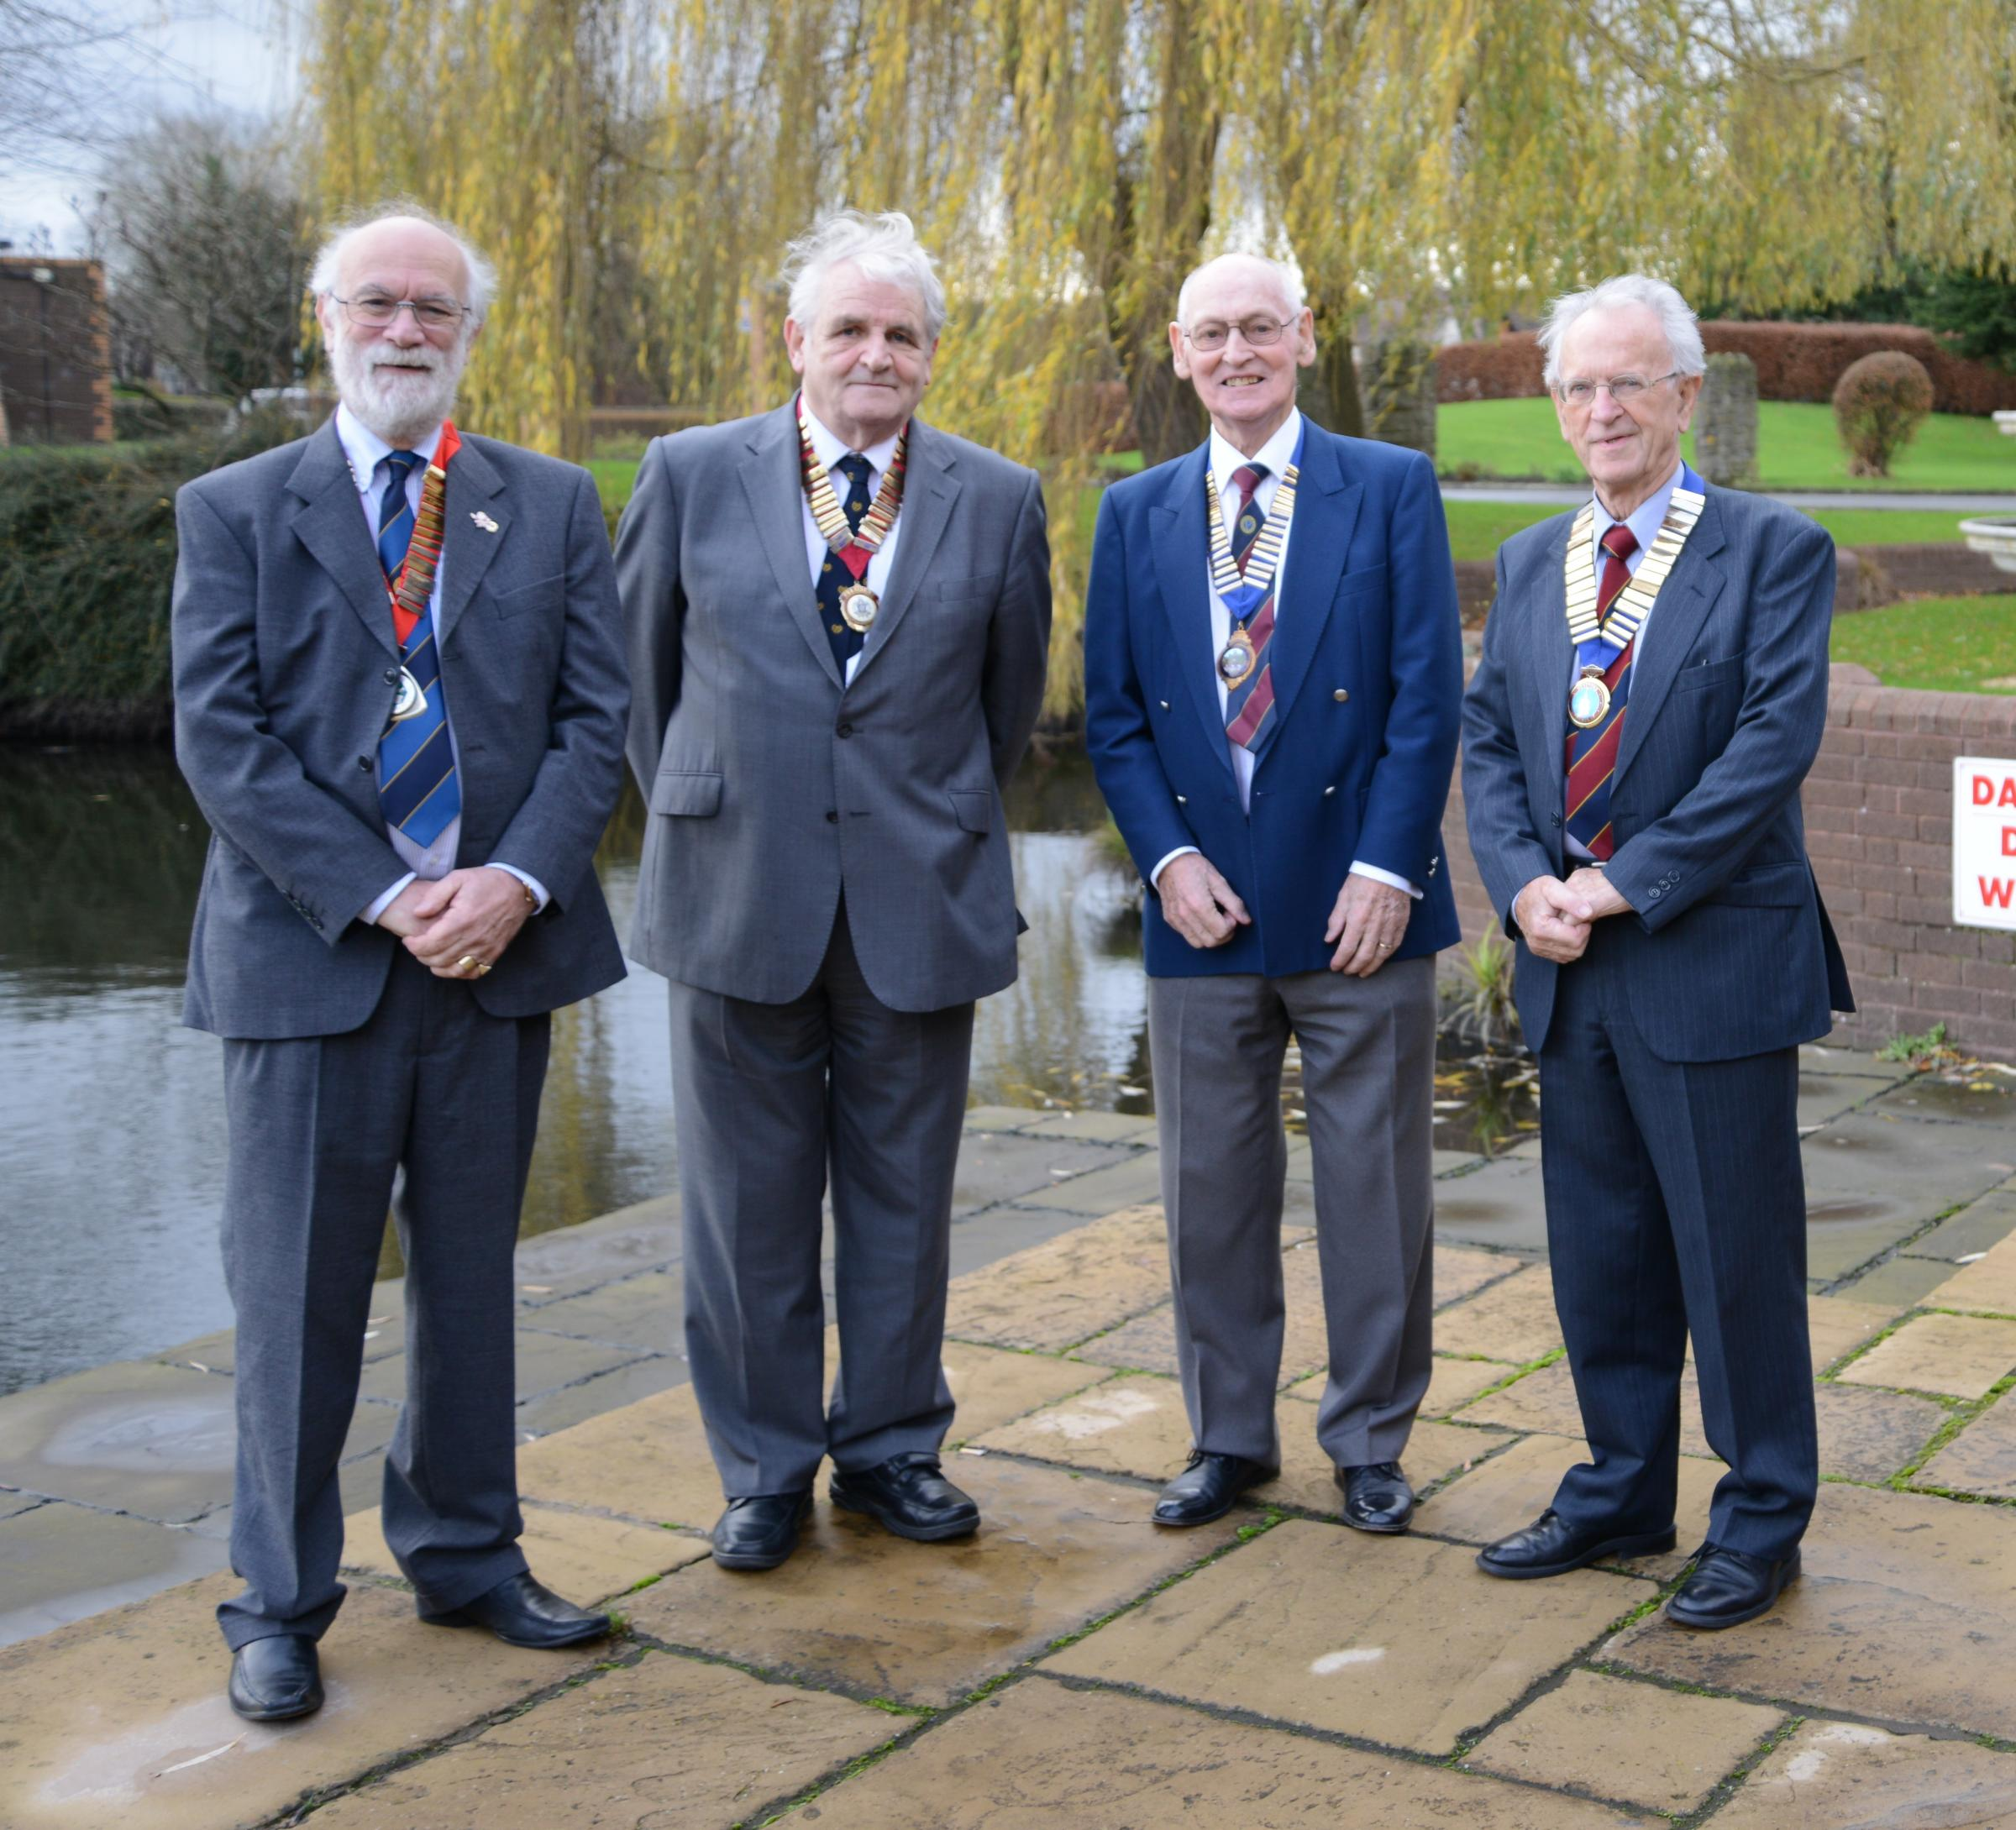 From left to right: Jeff Jones (St Ethelbert Probus Club), Les Birch (City of Hereford Probus Club), Clive Walters (Hereford Probus 3 Club), Colin Holmes (Hereford Probus 4 Club). Photo taken by Mike Steadman